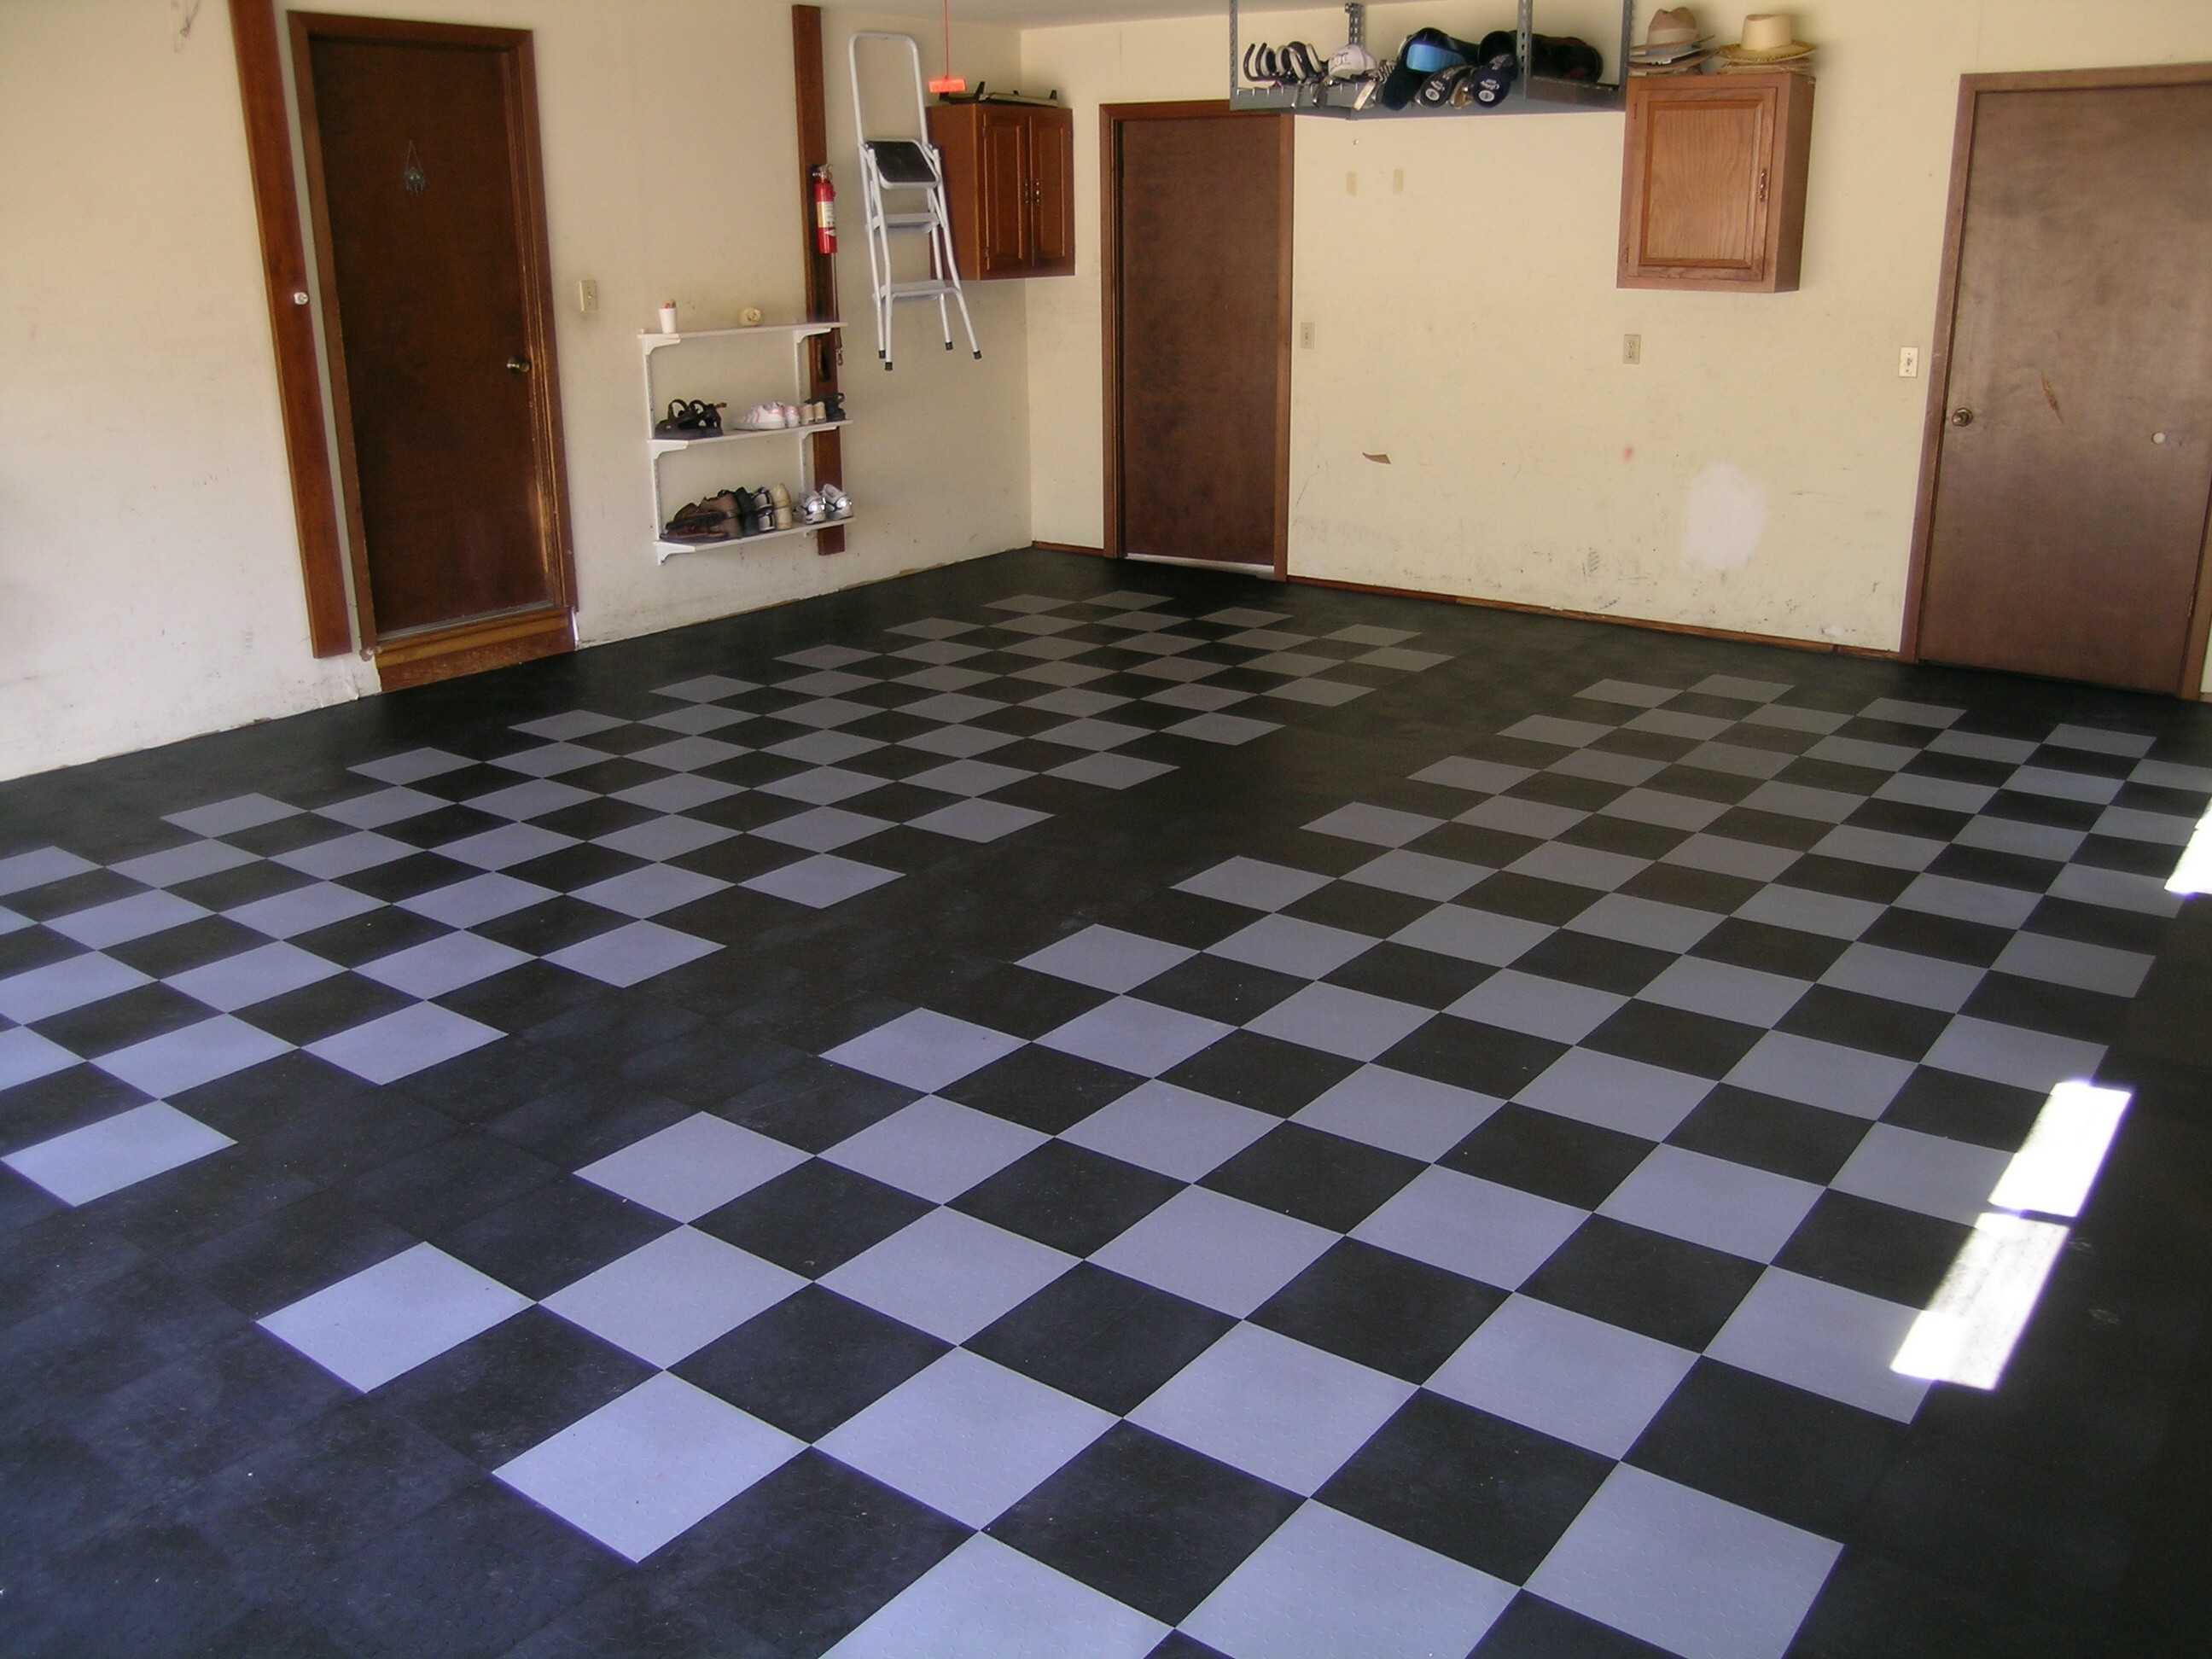 Dynotile tops field with style garage floor tiles offer car dynotile tops field with style garage floor tiles offer car enthusiasts a classy crib to park their baby dailygadgetfo Image collections